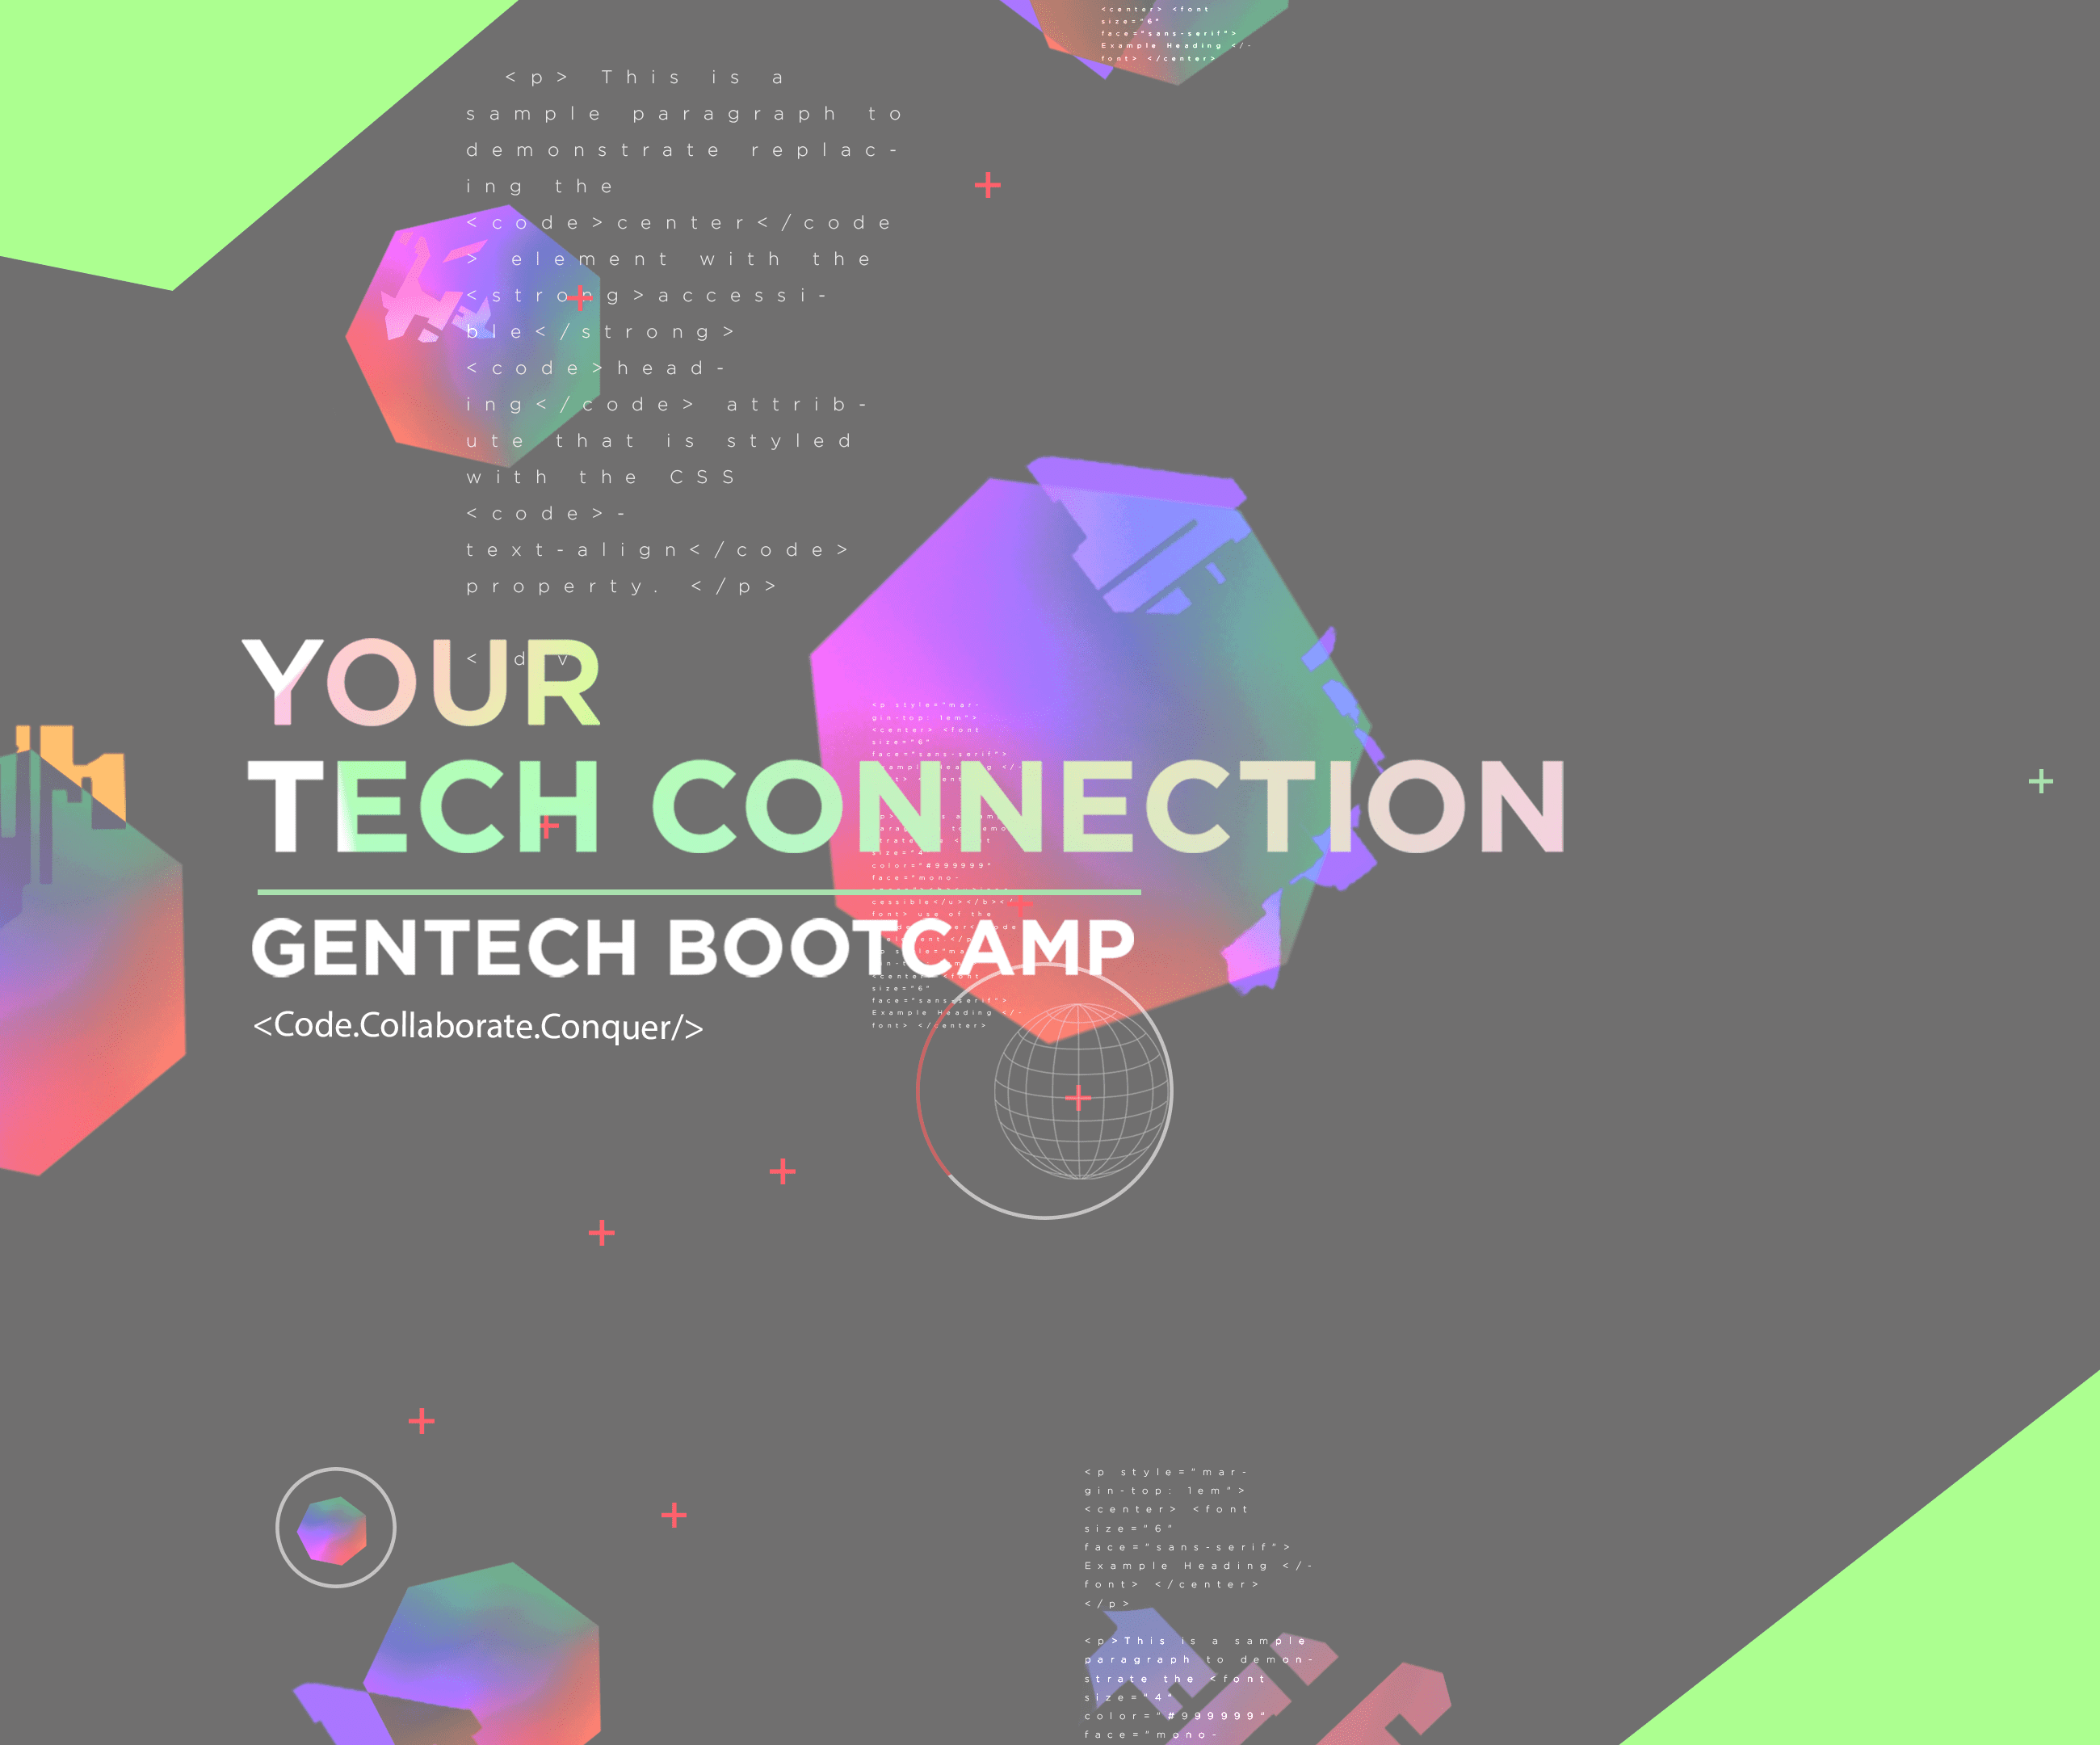 Your Tech Connection Gentech Bootcamp